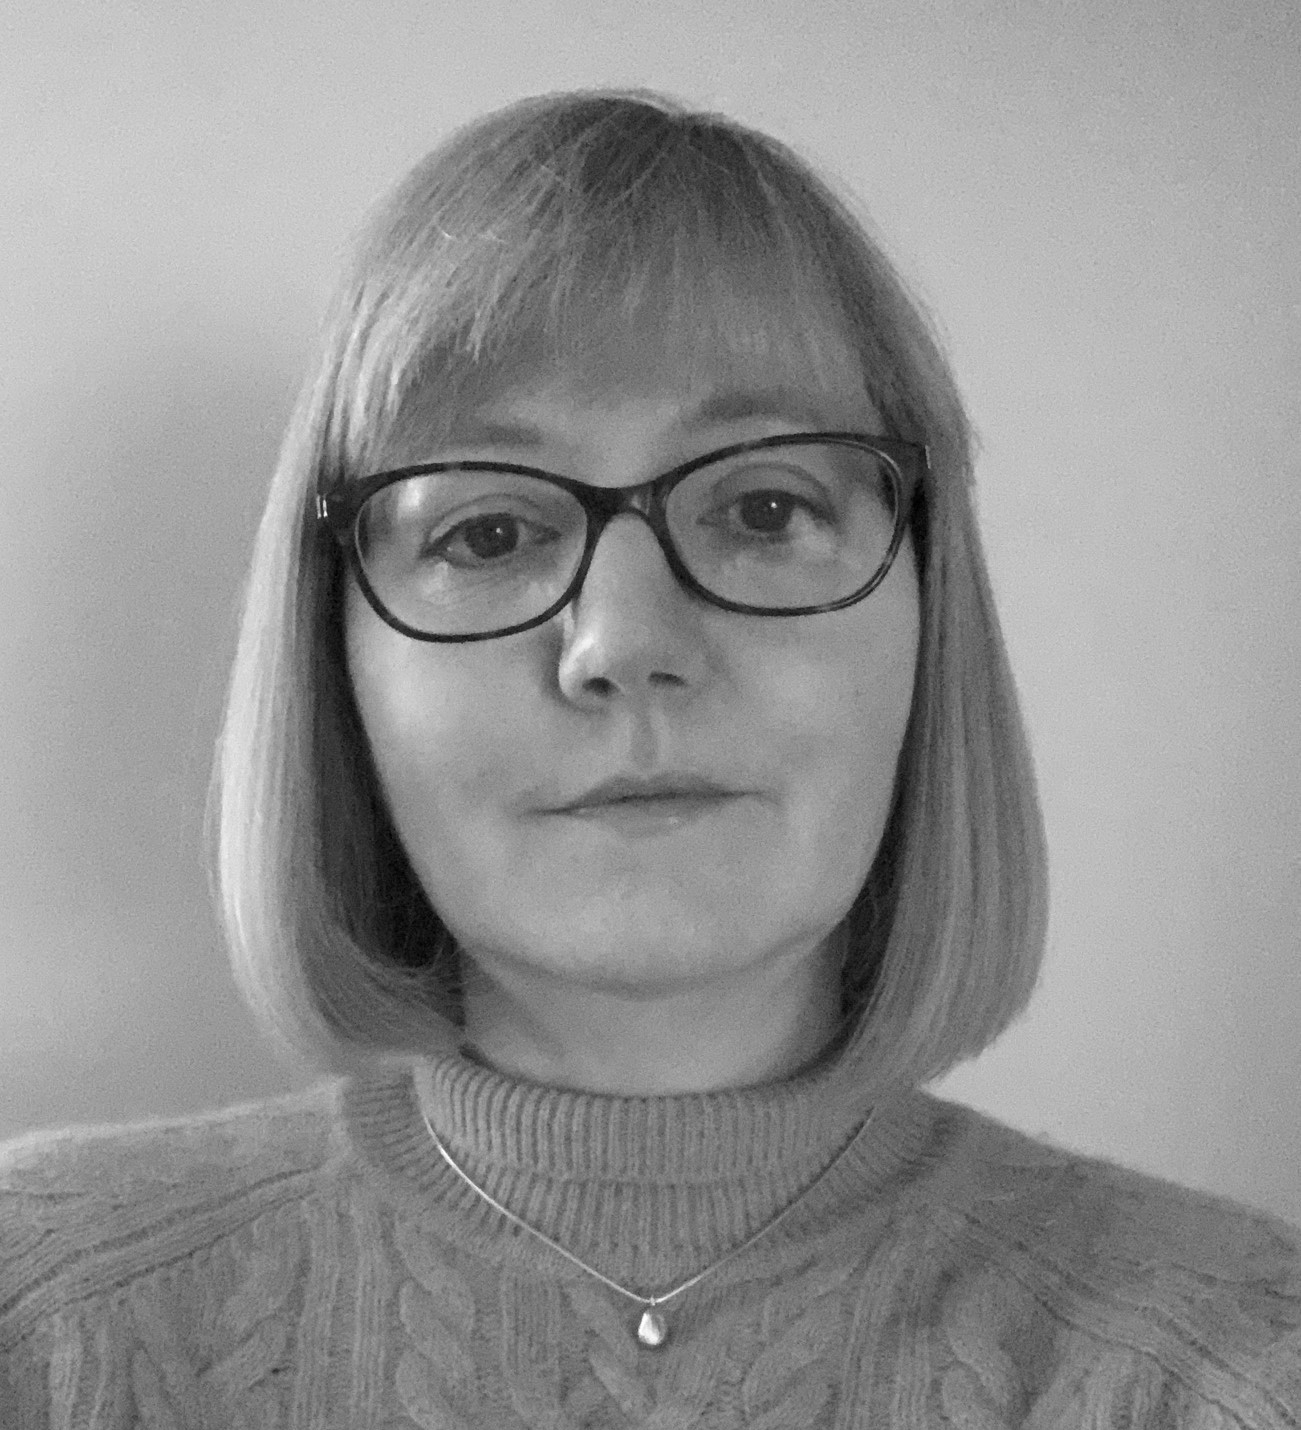 Dr Clare Murray, senior lecturer and consultant in respiratory paediatrics, Royal Manchester Children's Hospital